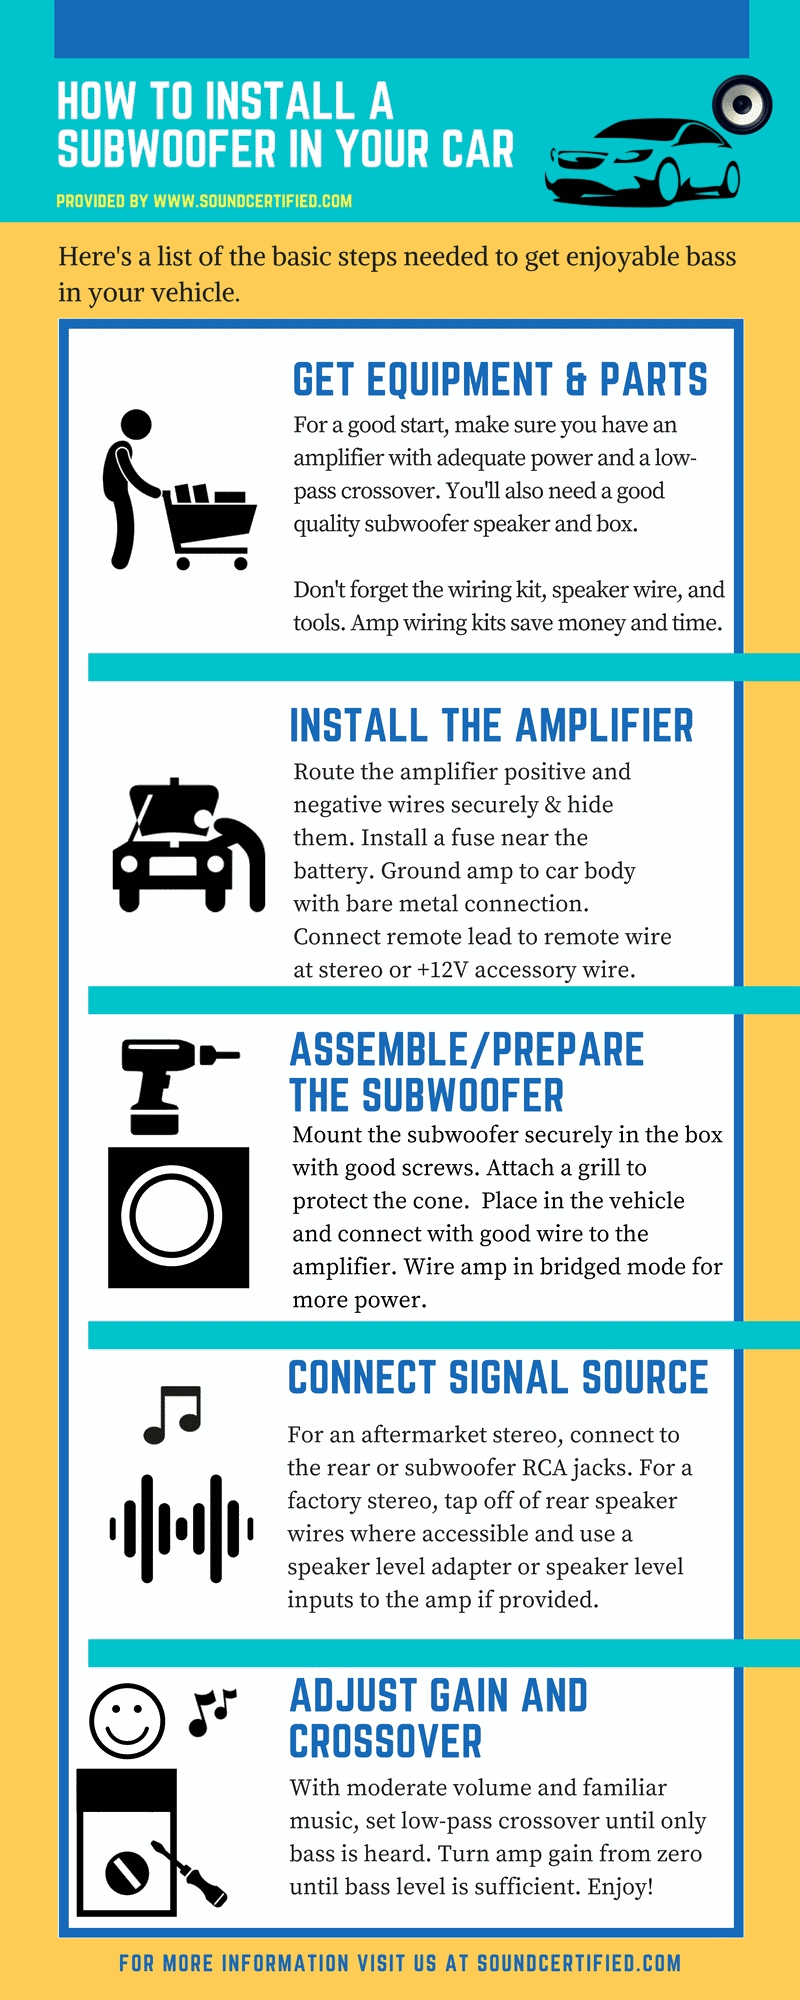 How To Install A Subwoofer And Subwoofer Amp In Your Car - The DIY ...